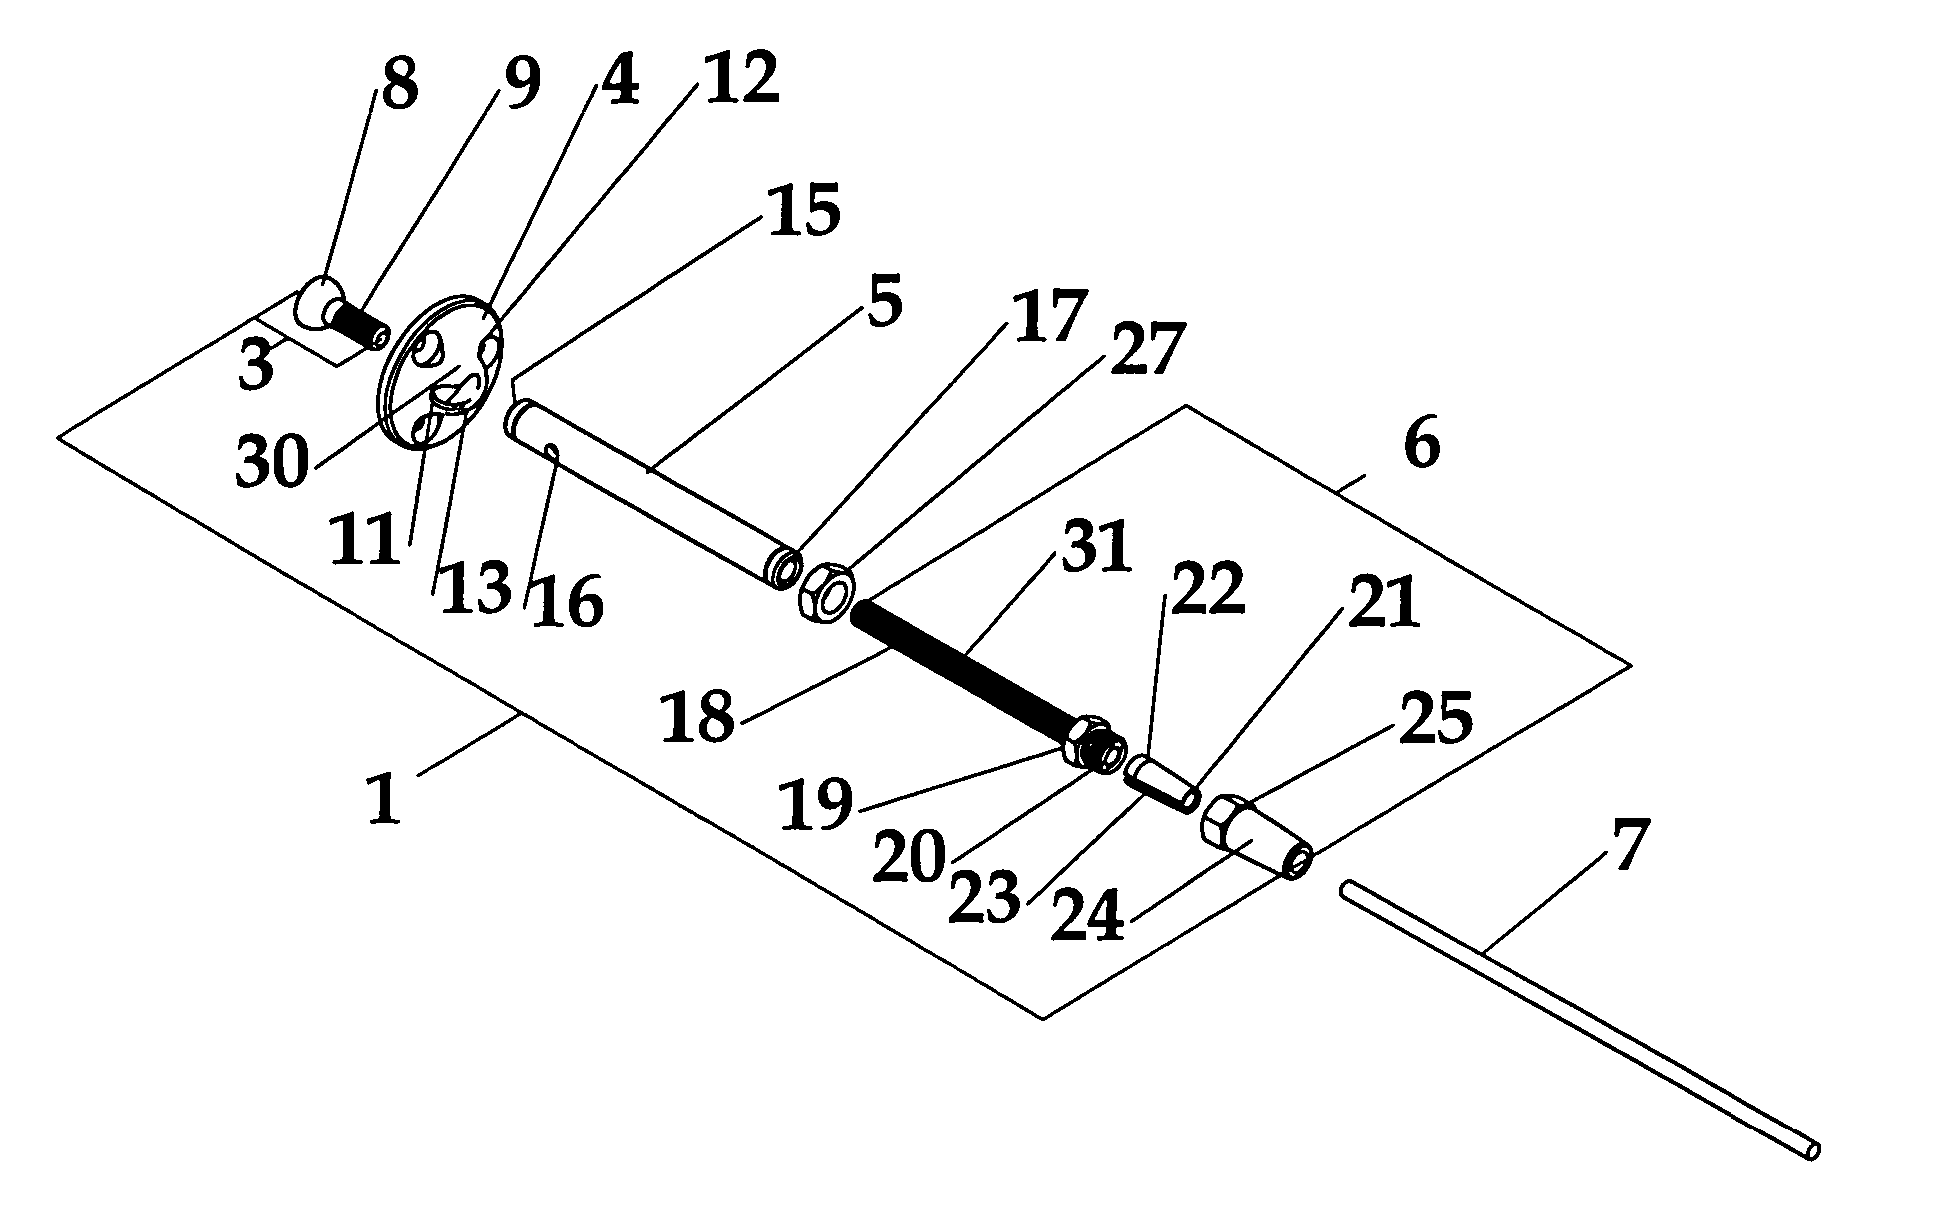 Brevet US20050207838 - Wire rope connectors and tensioners for